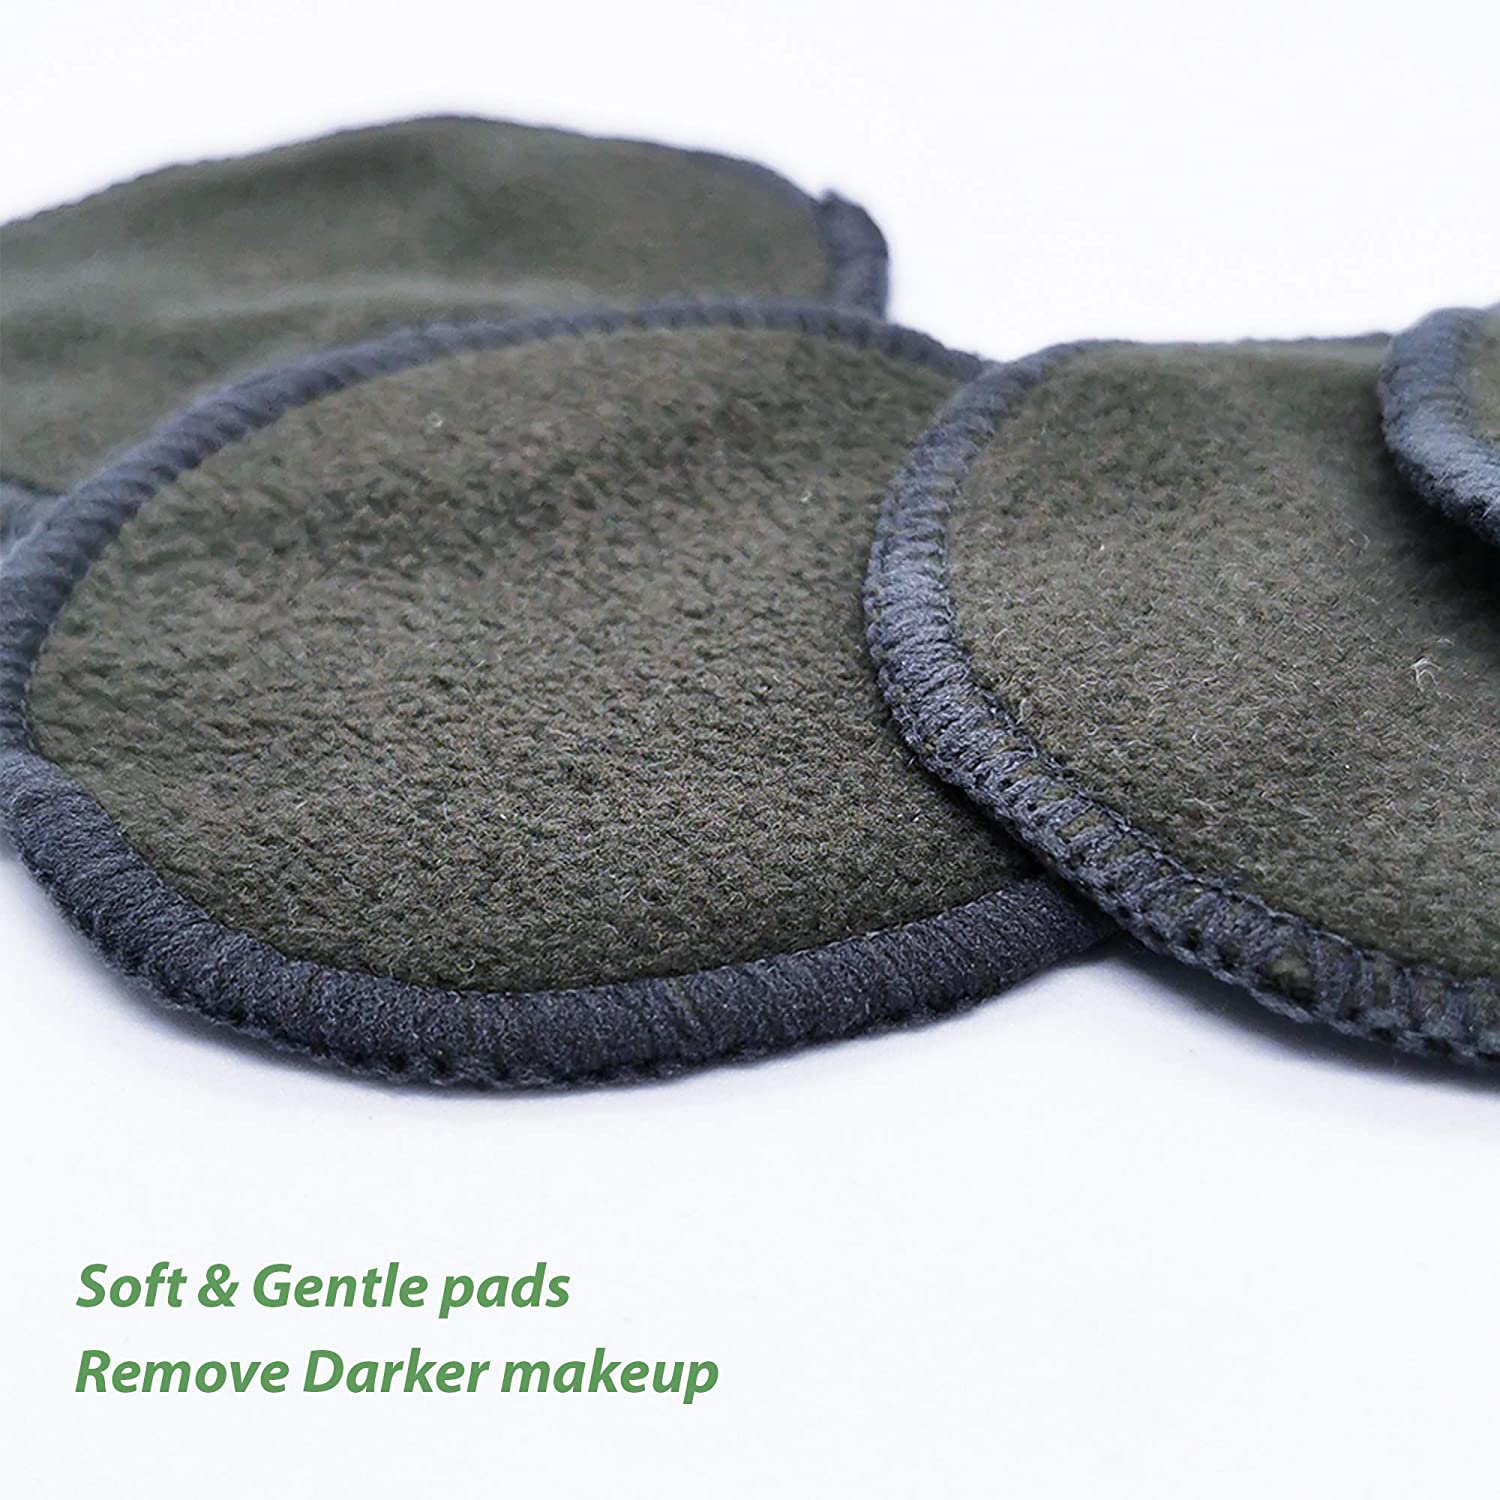 Bamboo Makeup Remover Pads- Kraft Paper Packaging- Zero Waste Darker Makeup Pads 6Pcs Black Reusable Cotton Pads- Bamboo Charcoal Reusable Cotton Wool Pads Eco Friendly Products-Free Ebook